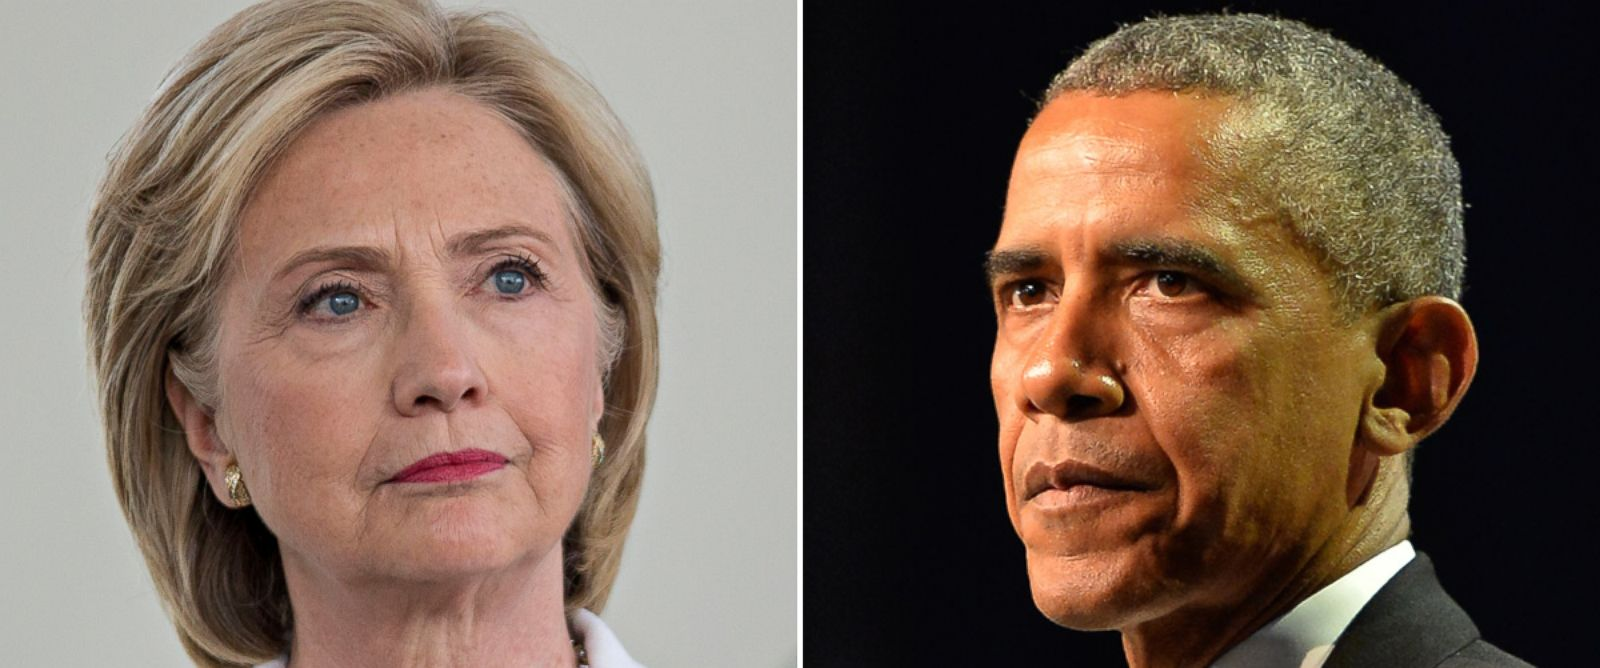 PHOTO: Hillary Clinton, former U.S. secretary of state and 2016 Democratic presidential candidate, at an event on Aug. 26, 2015 in Ankeny, Iowa and President Barack Obama speaks at the Phoenix Awards Dinner on Sept. 19, 2015 in Washington.